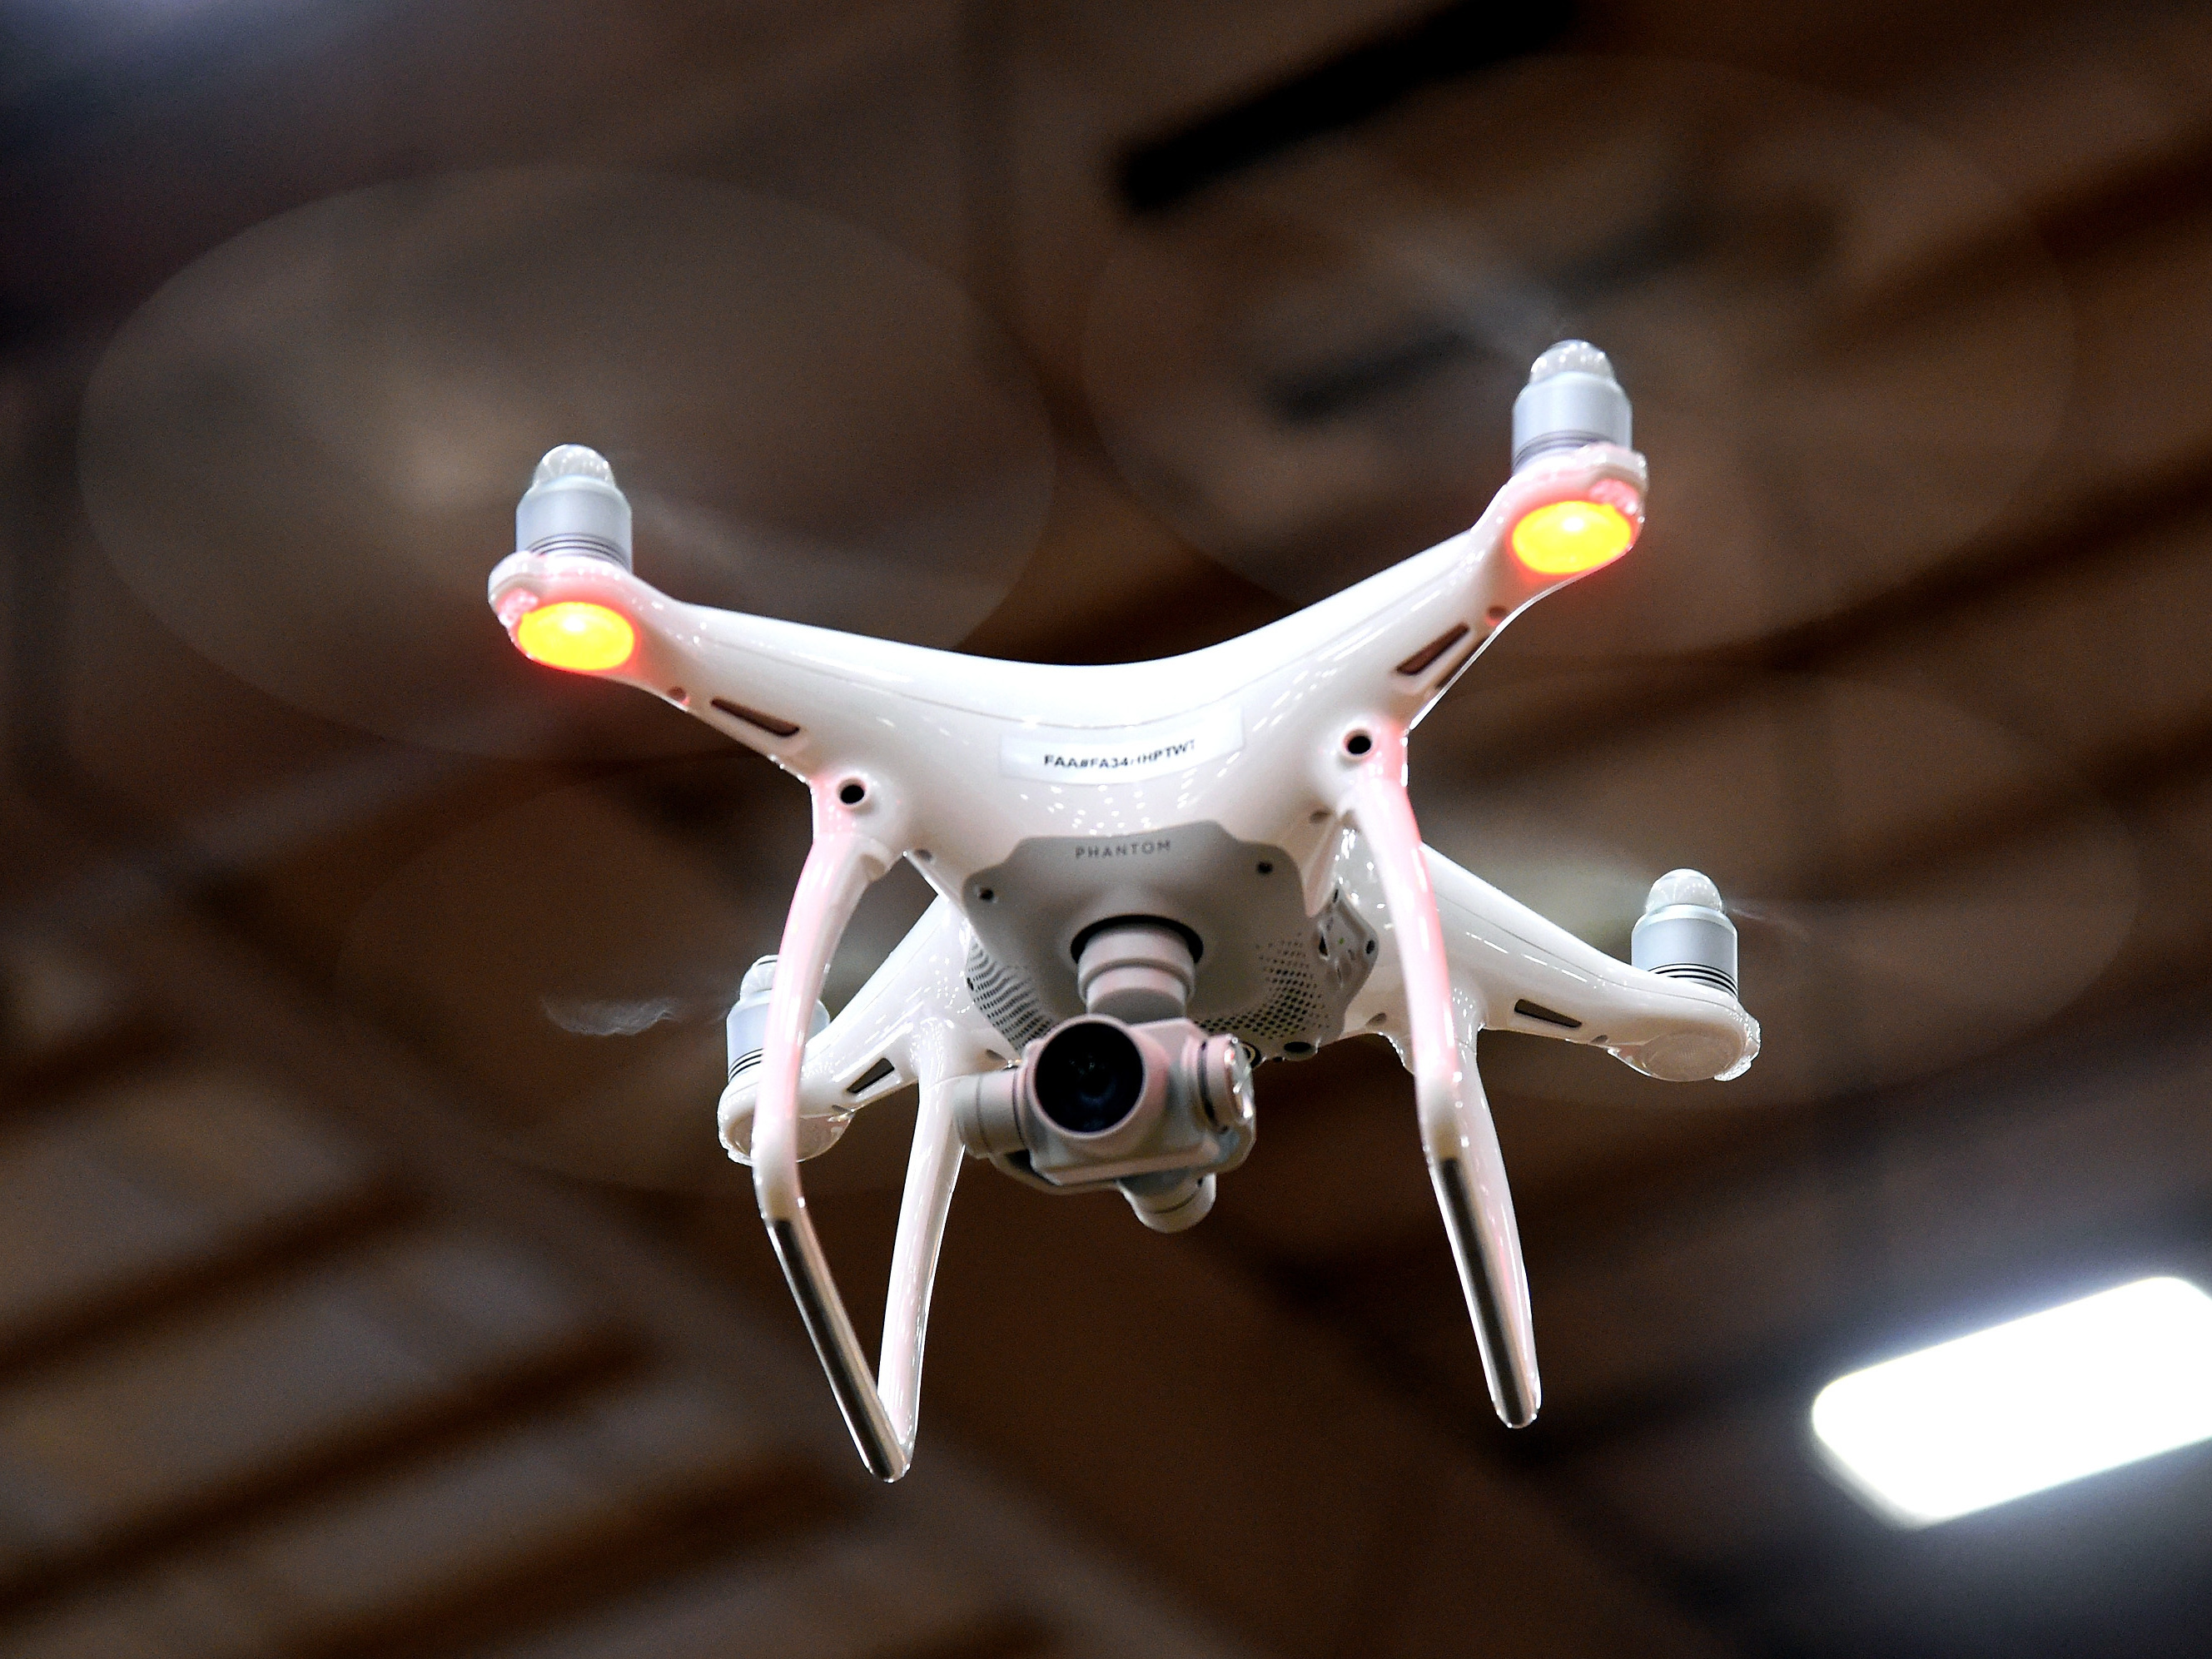 The Drone Under Your Tree Can't Fly High Until Registered With The FAA